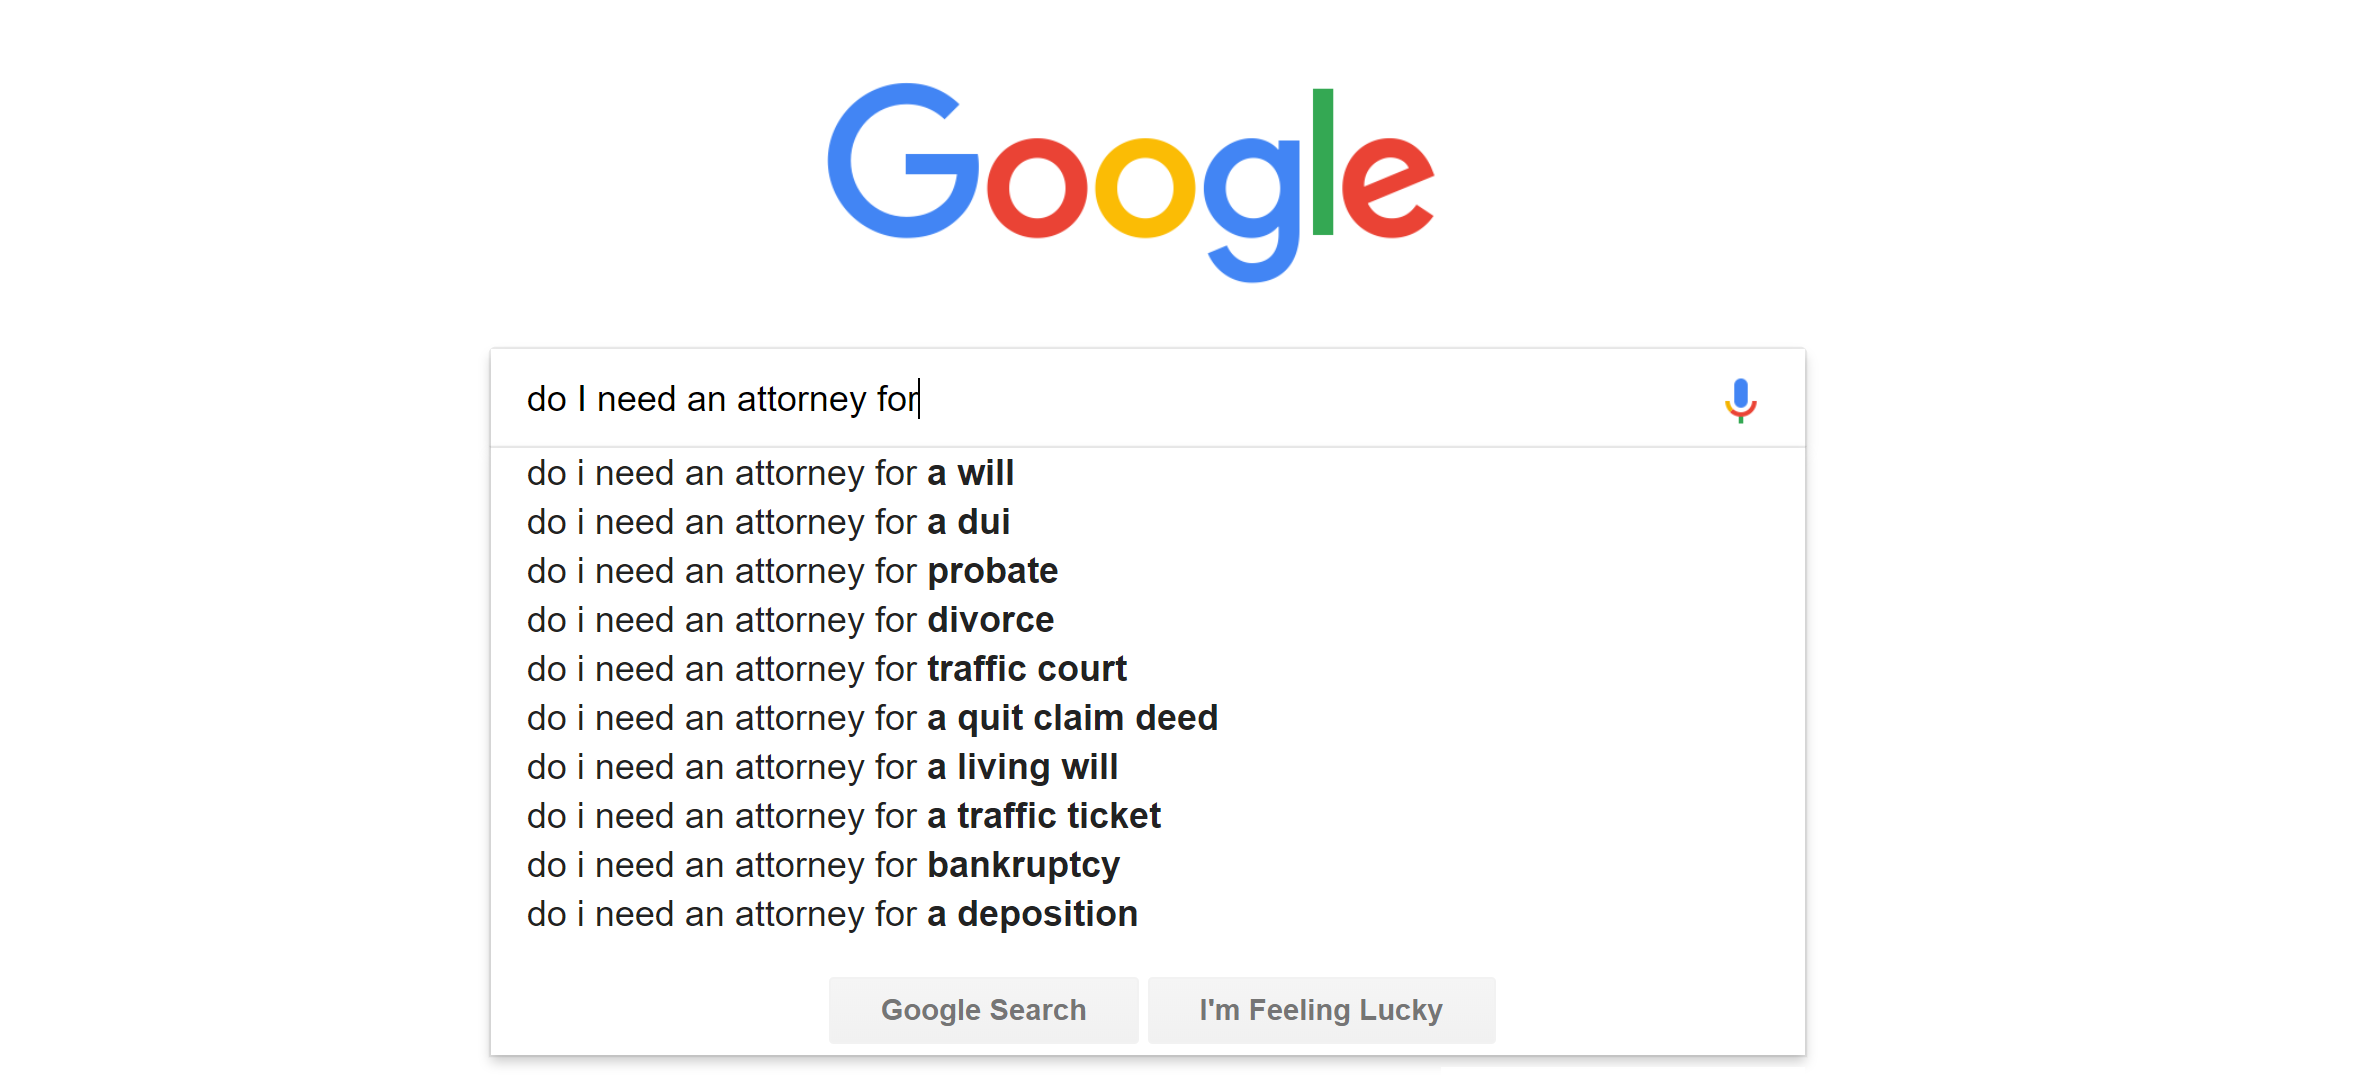 5 Best Practices for Law Firm SEO: An Attorney's Guide to Getting Great Google Results